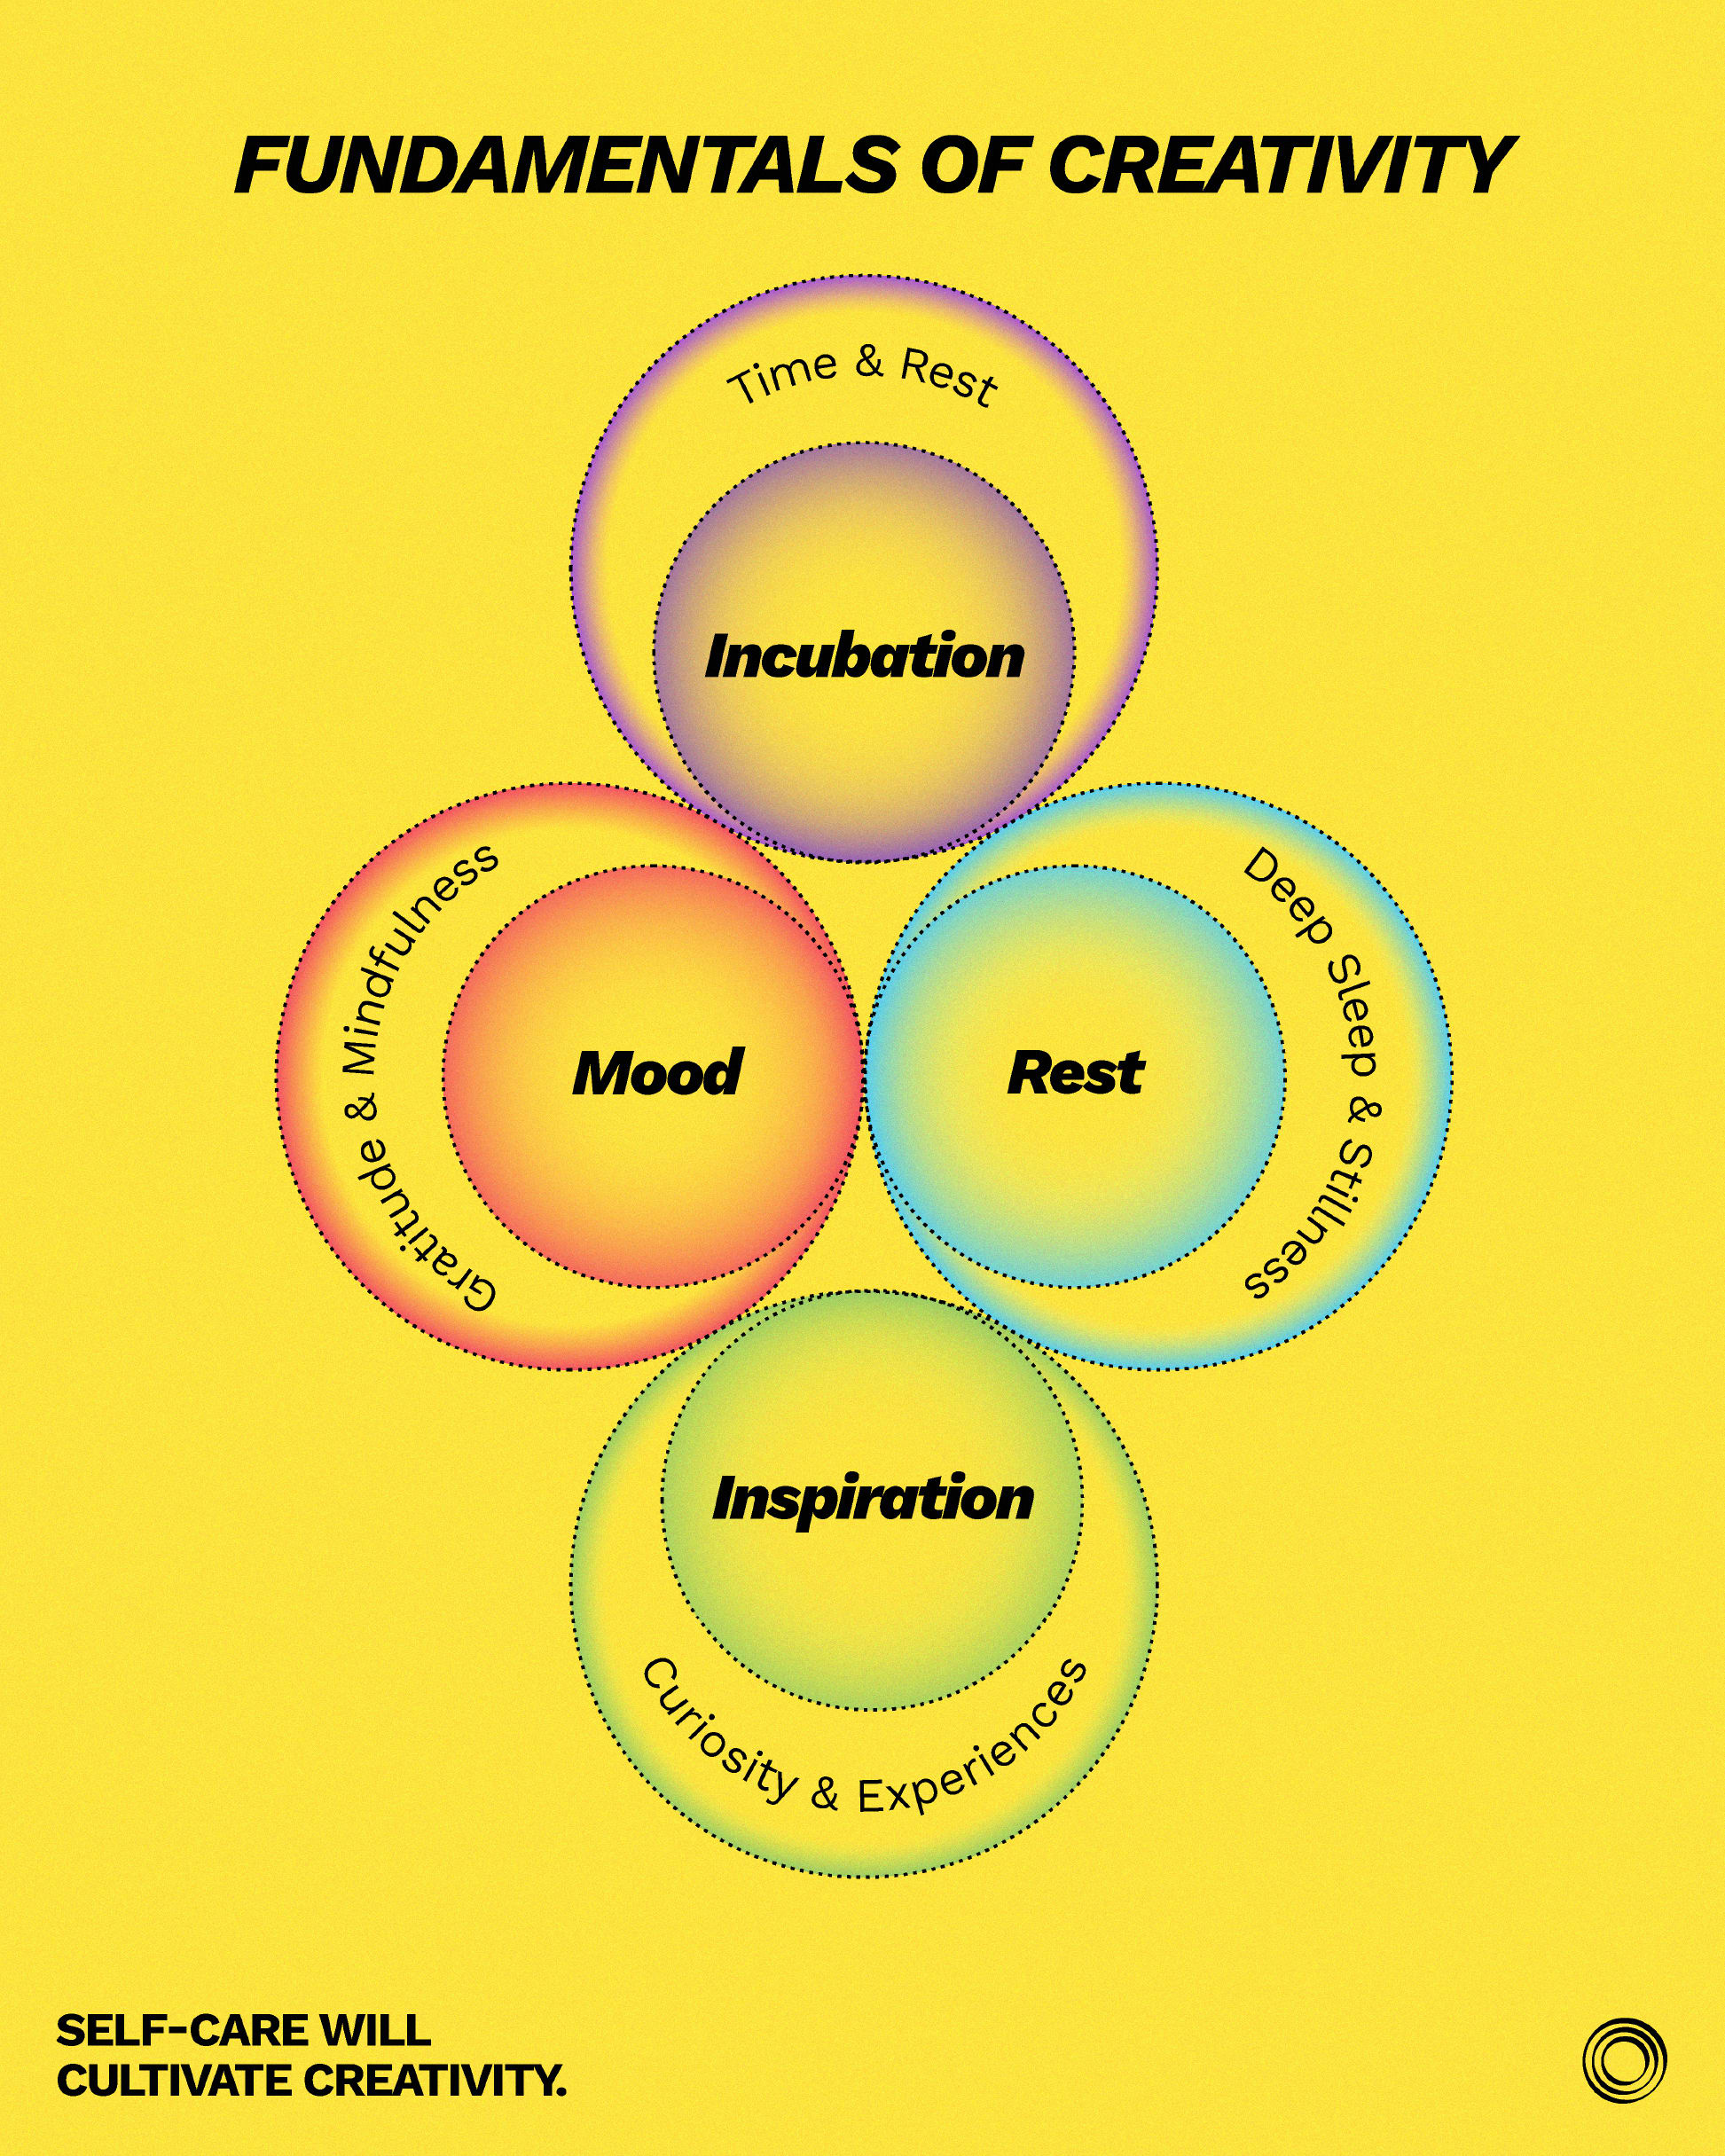 Using Stillness meditation to increase creativity in the workplace